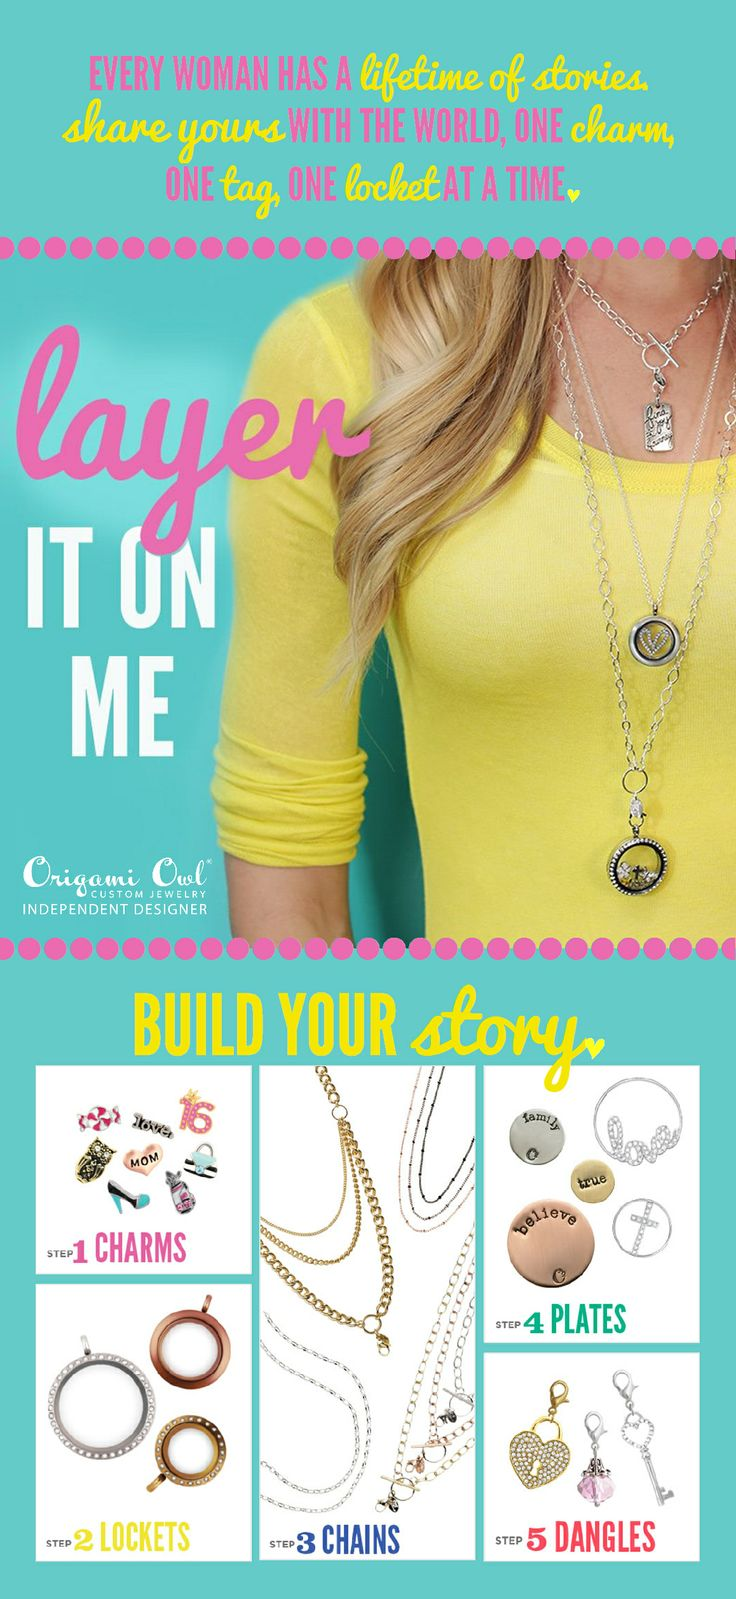 Origami Owl 2014 Spring Collection is now available so go check it out @ www.asaylor.origamiowl.com Or follow Ashley on FB @ The Owl Shack!  Thanks!